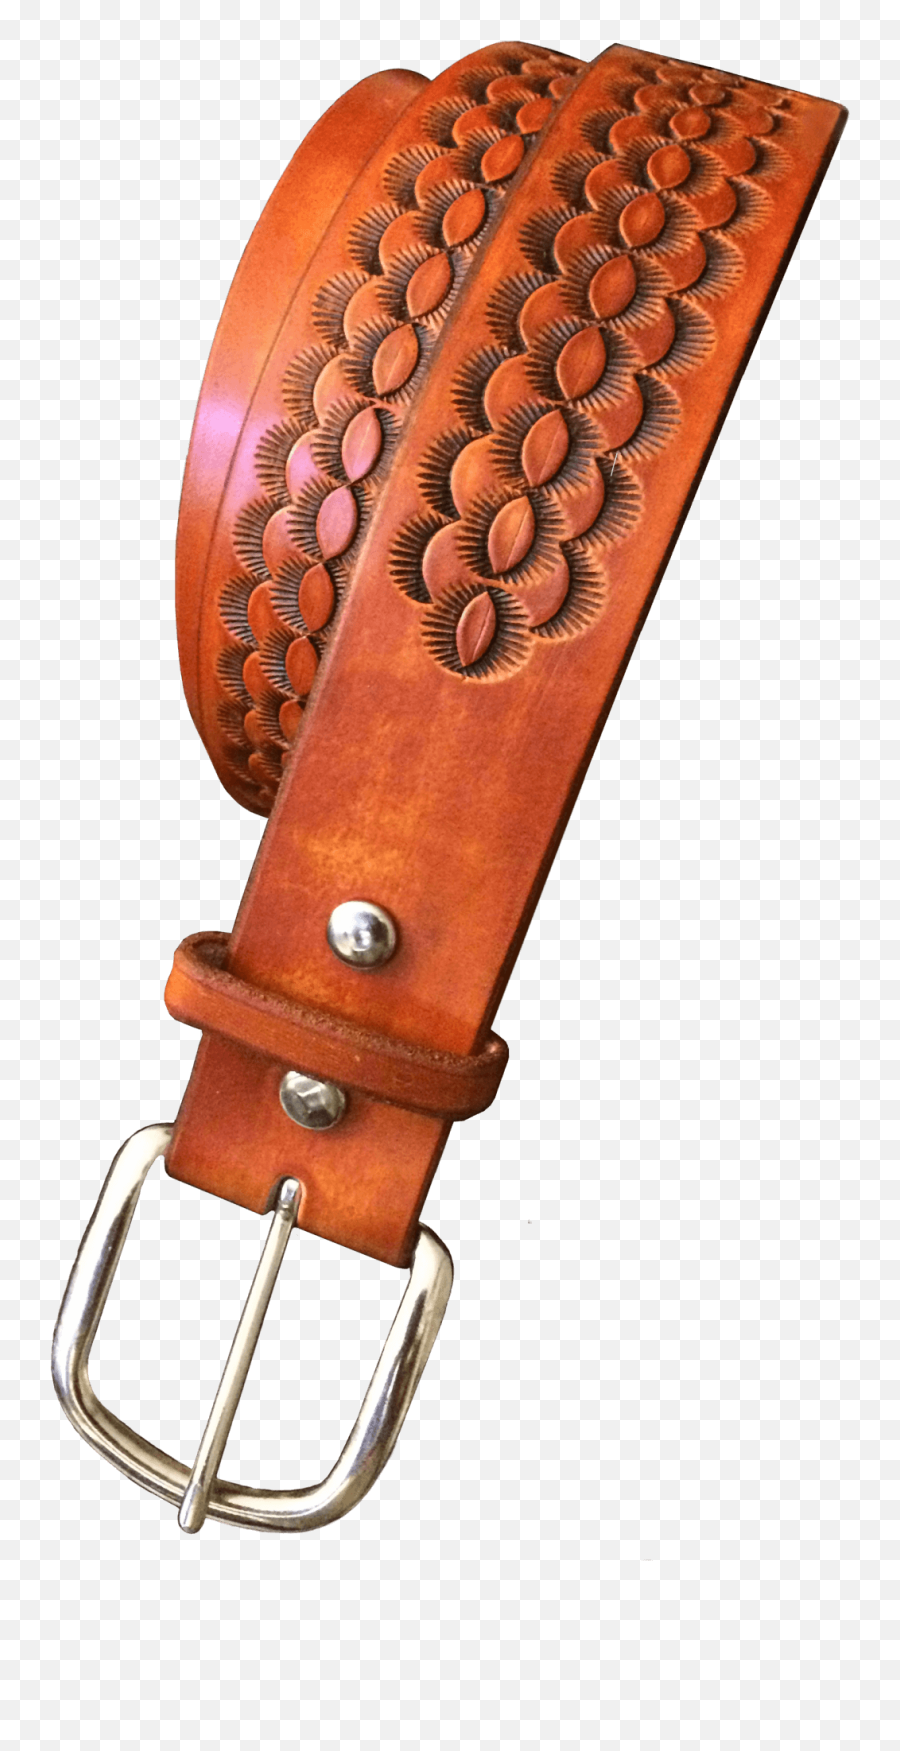 Arizona Hand Tooled Belt - Belt Emoji